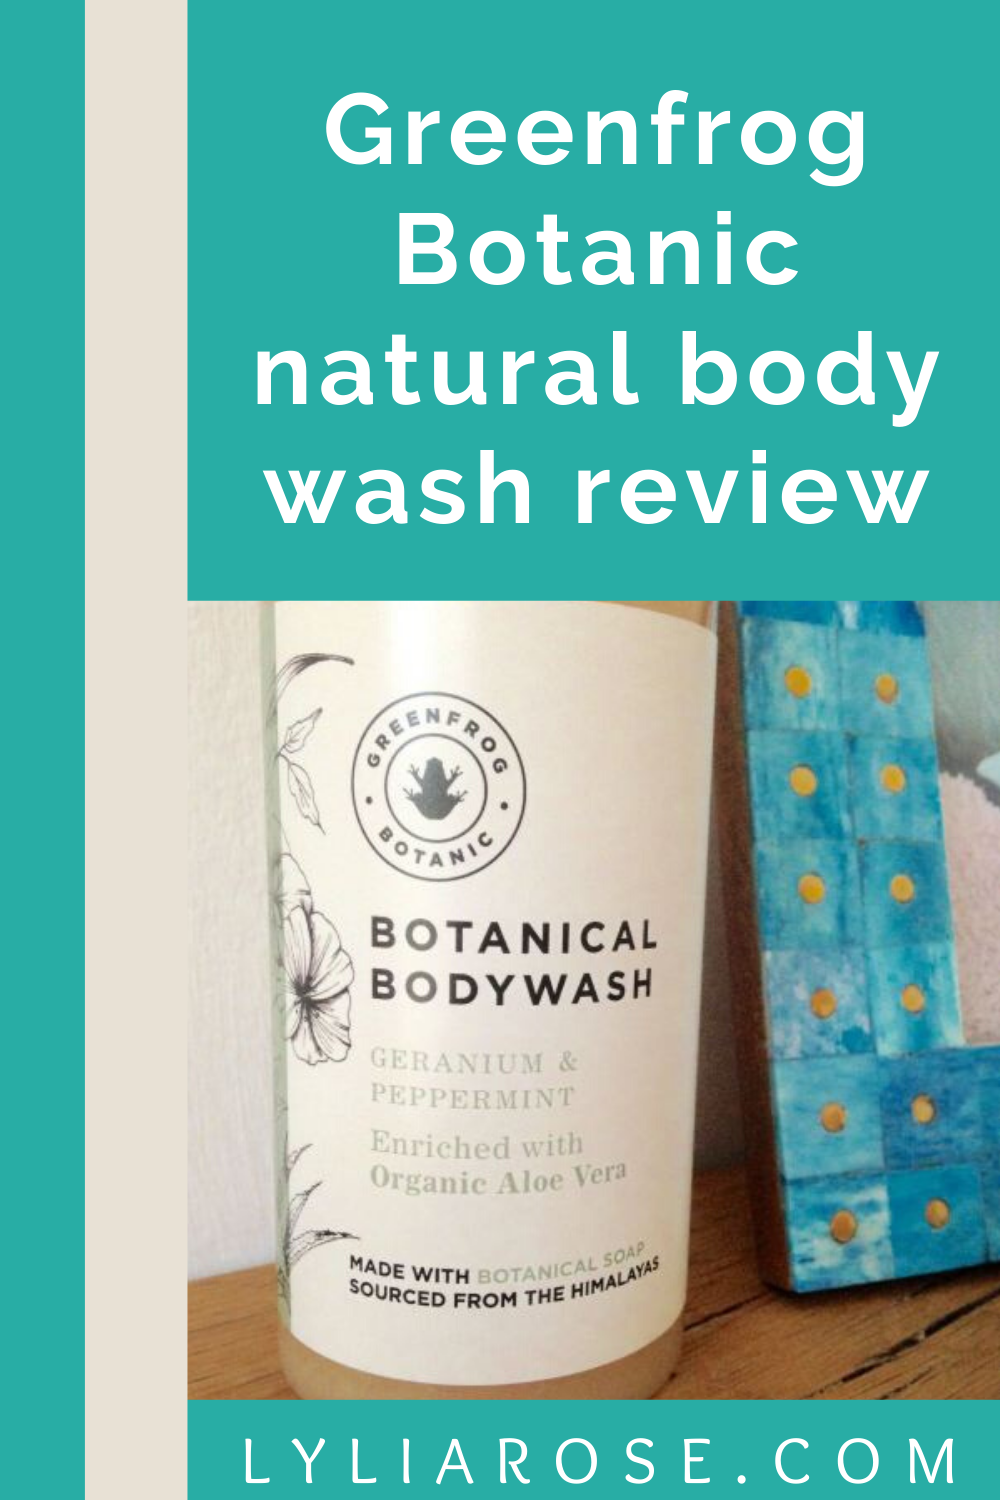 Greenfrog Botanic natural body wash review (4)